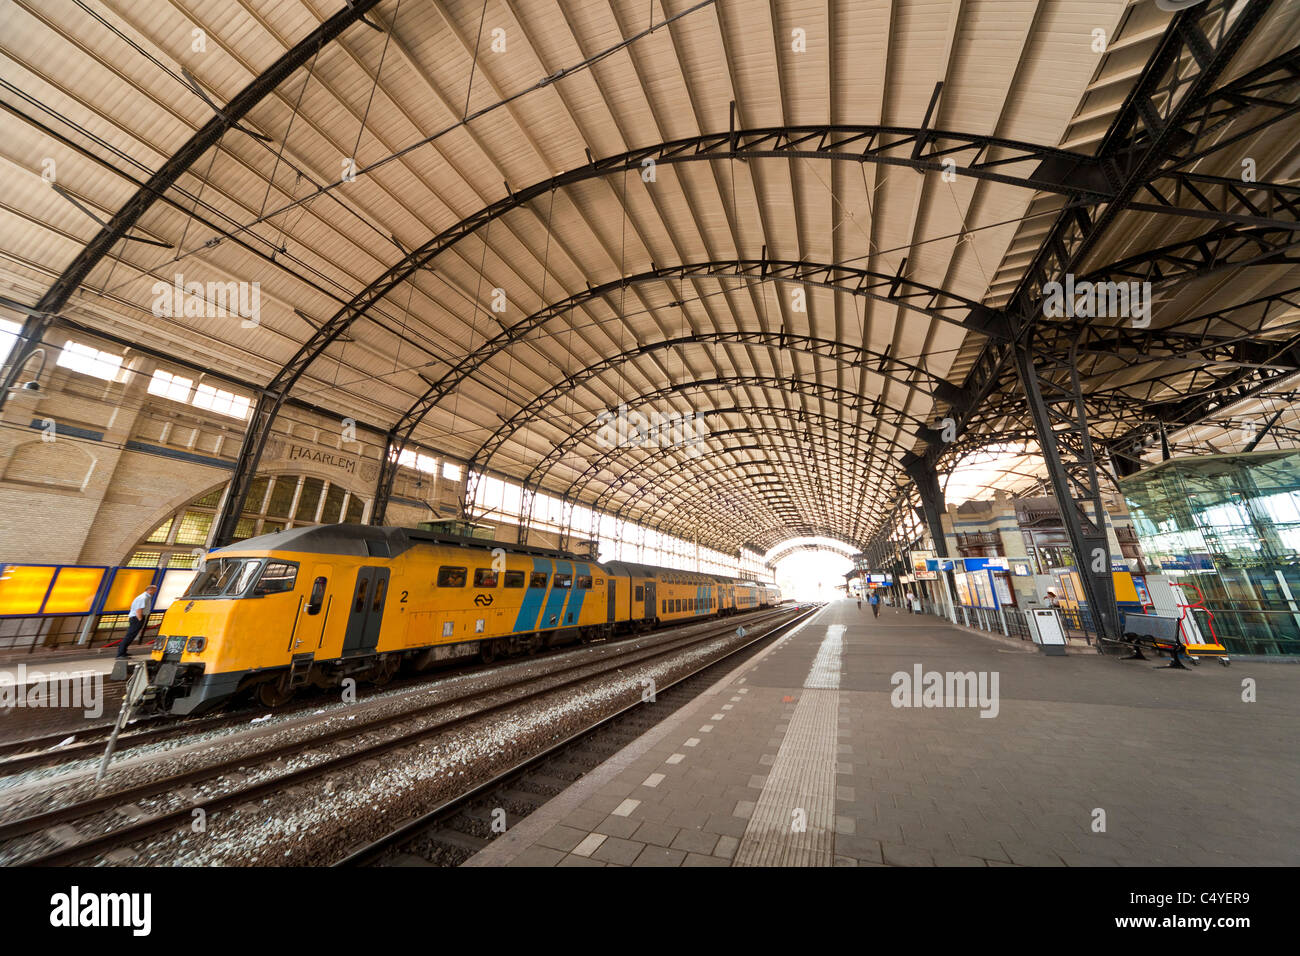 Landscape image of Haarlem Railway Station, Haarlem, Holland, Netherlands with train standing at platform. JMH5058 - Stock Image